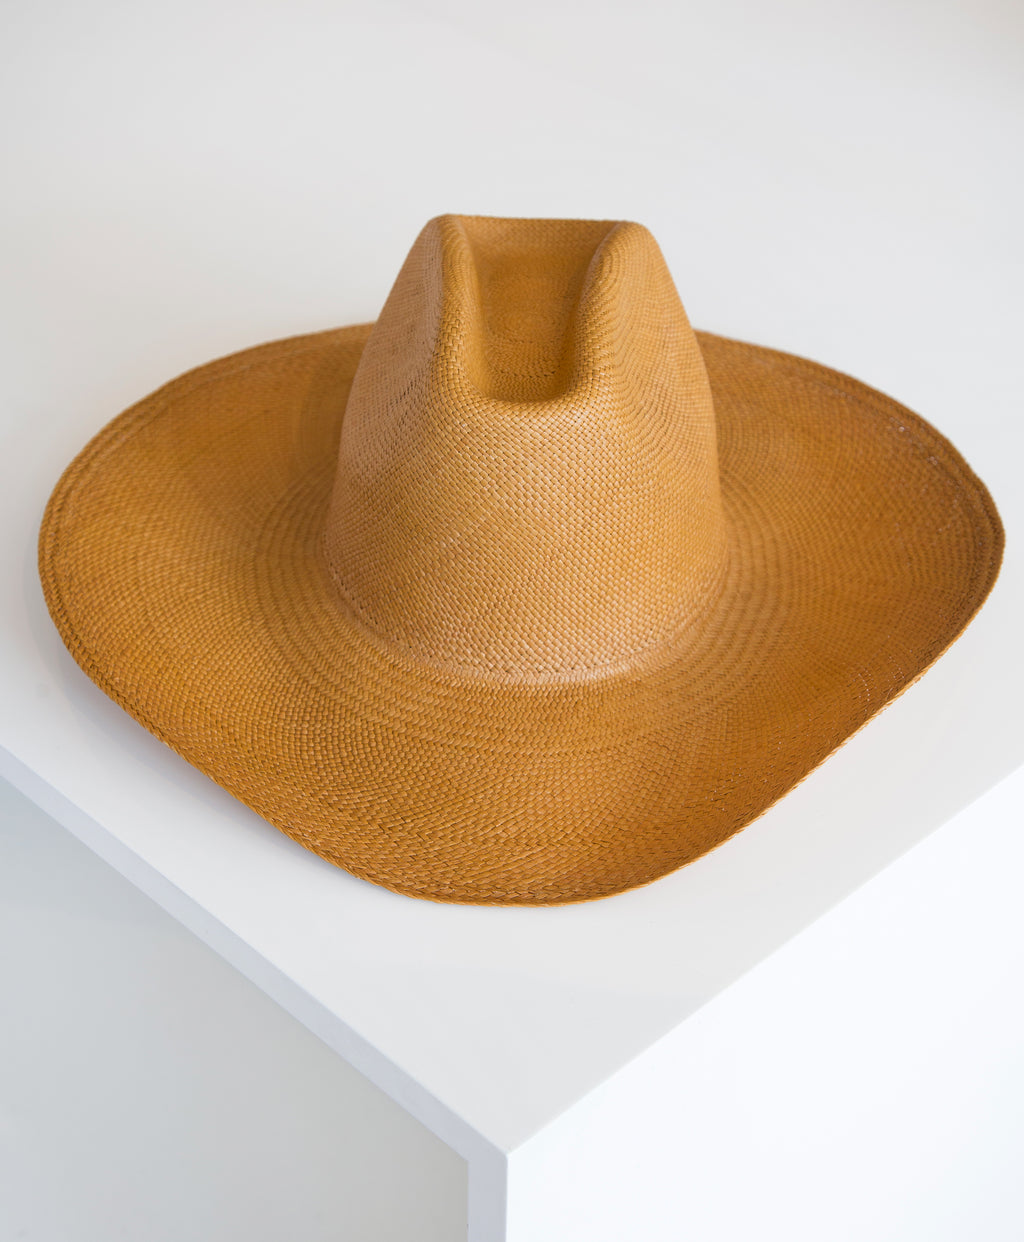 Cowboy Hat in Ochre - SOLD OUT